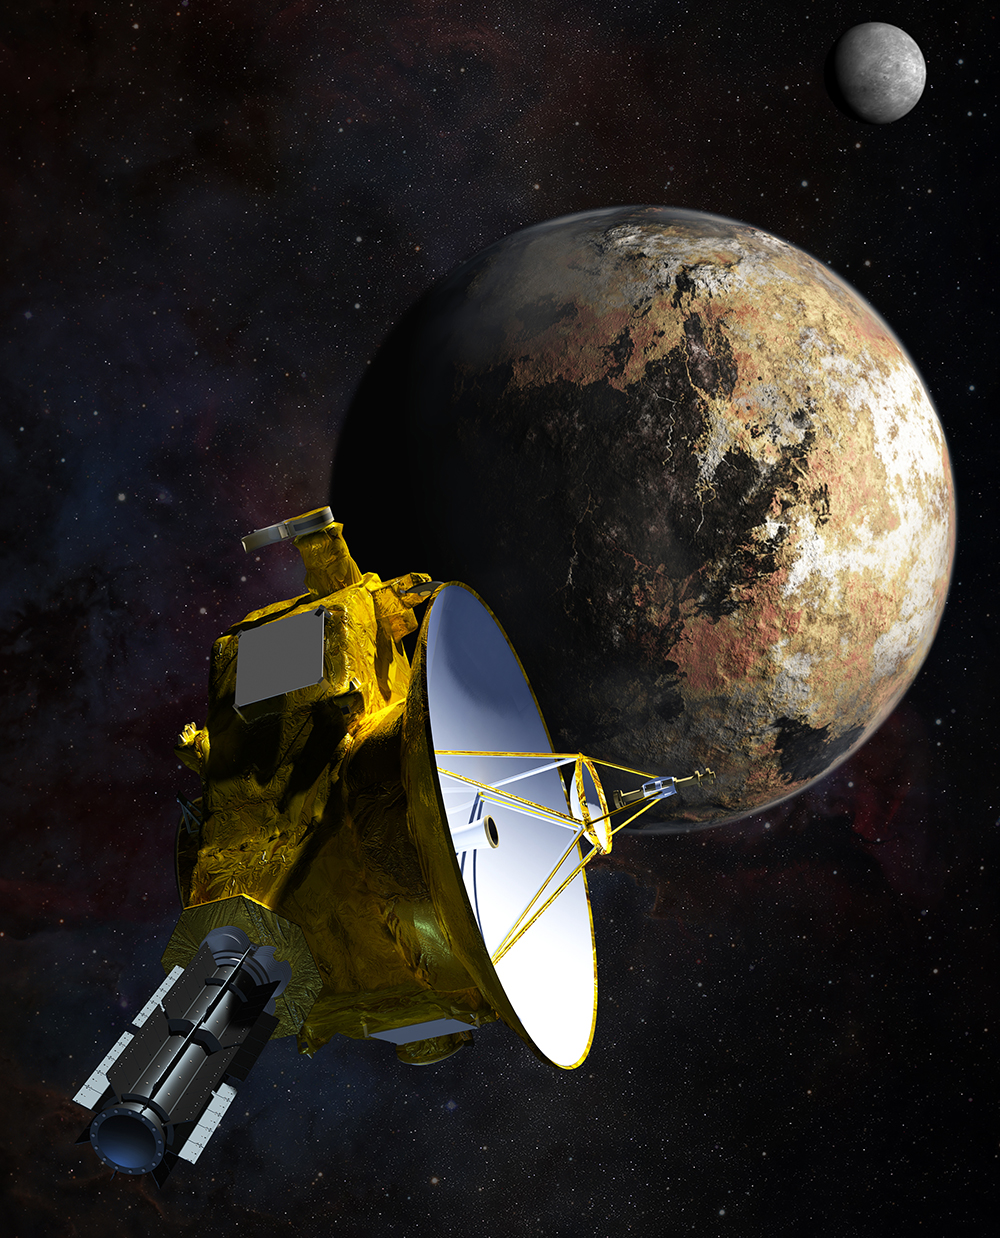 Pluto perhaps not so icy after all